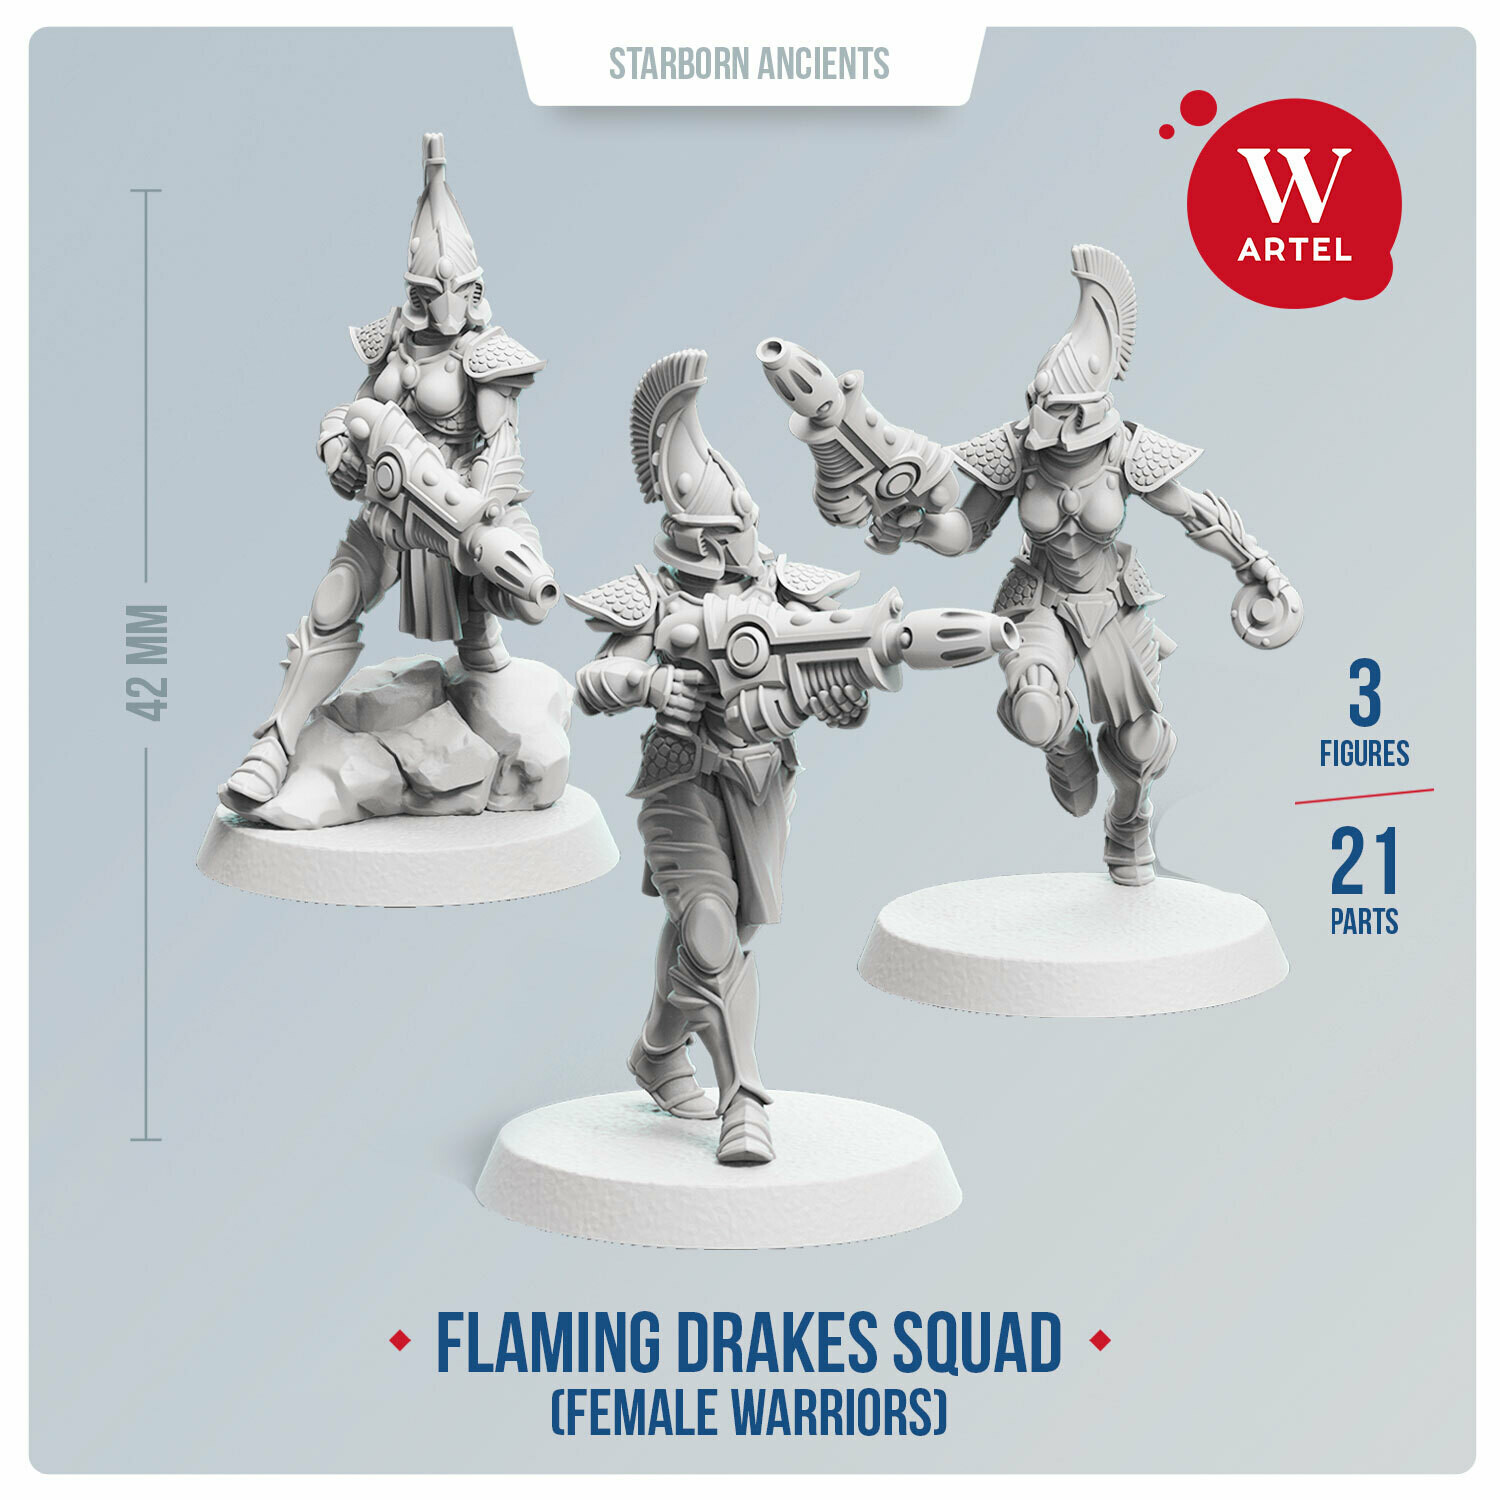 Flaming Drakes Squad (female warriors)